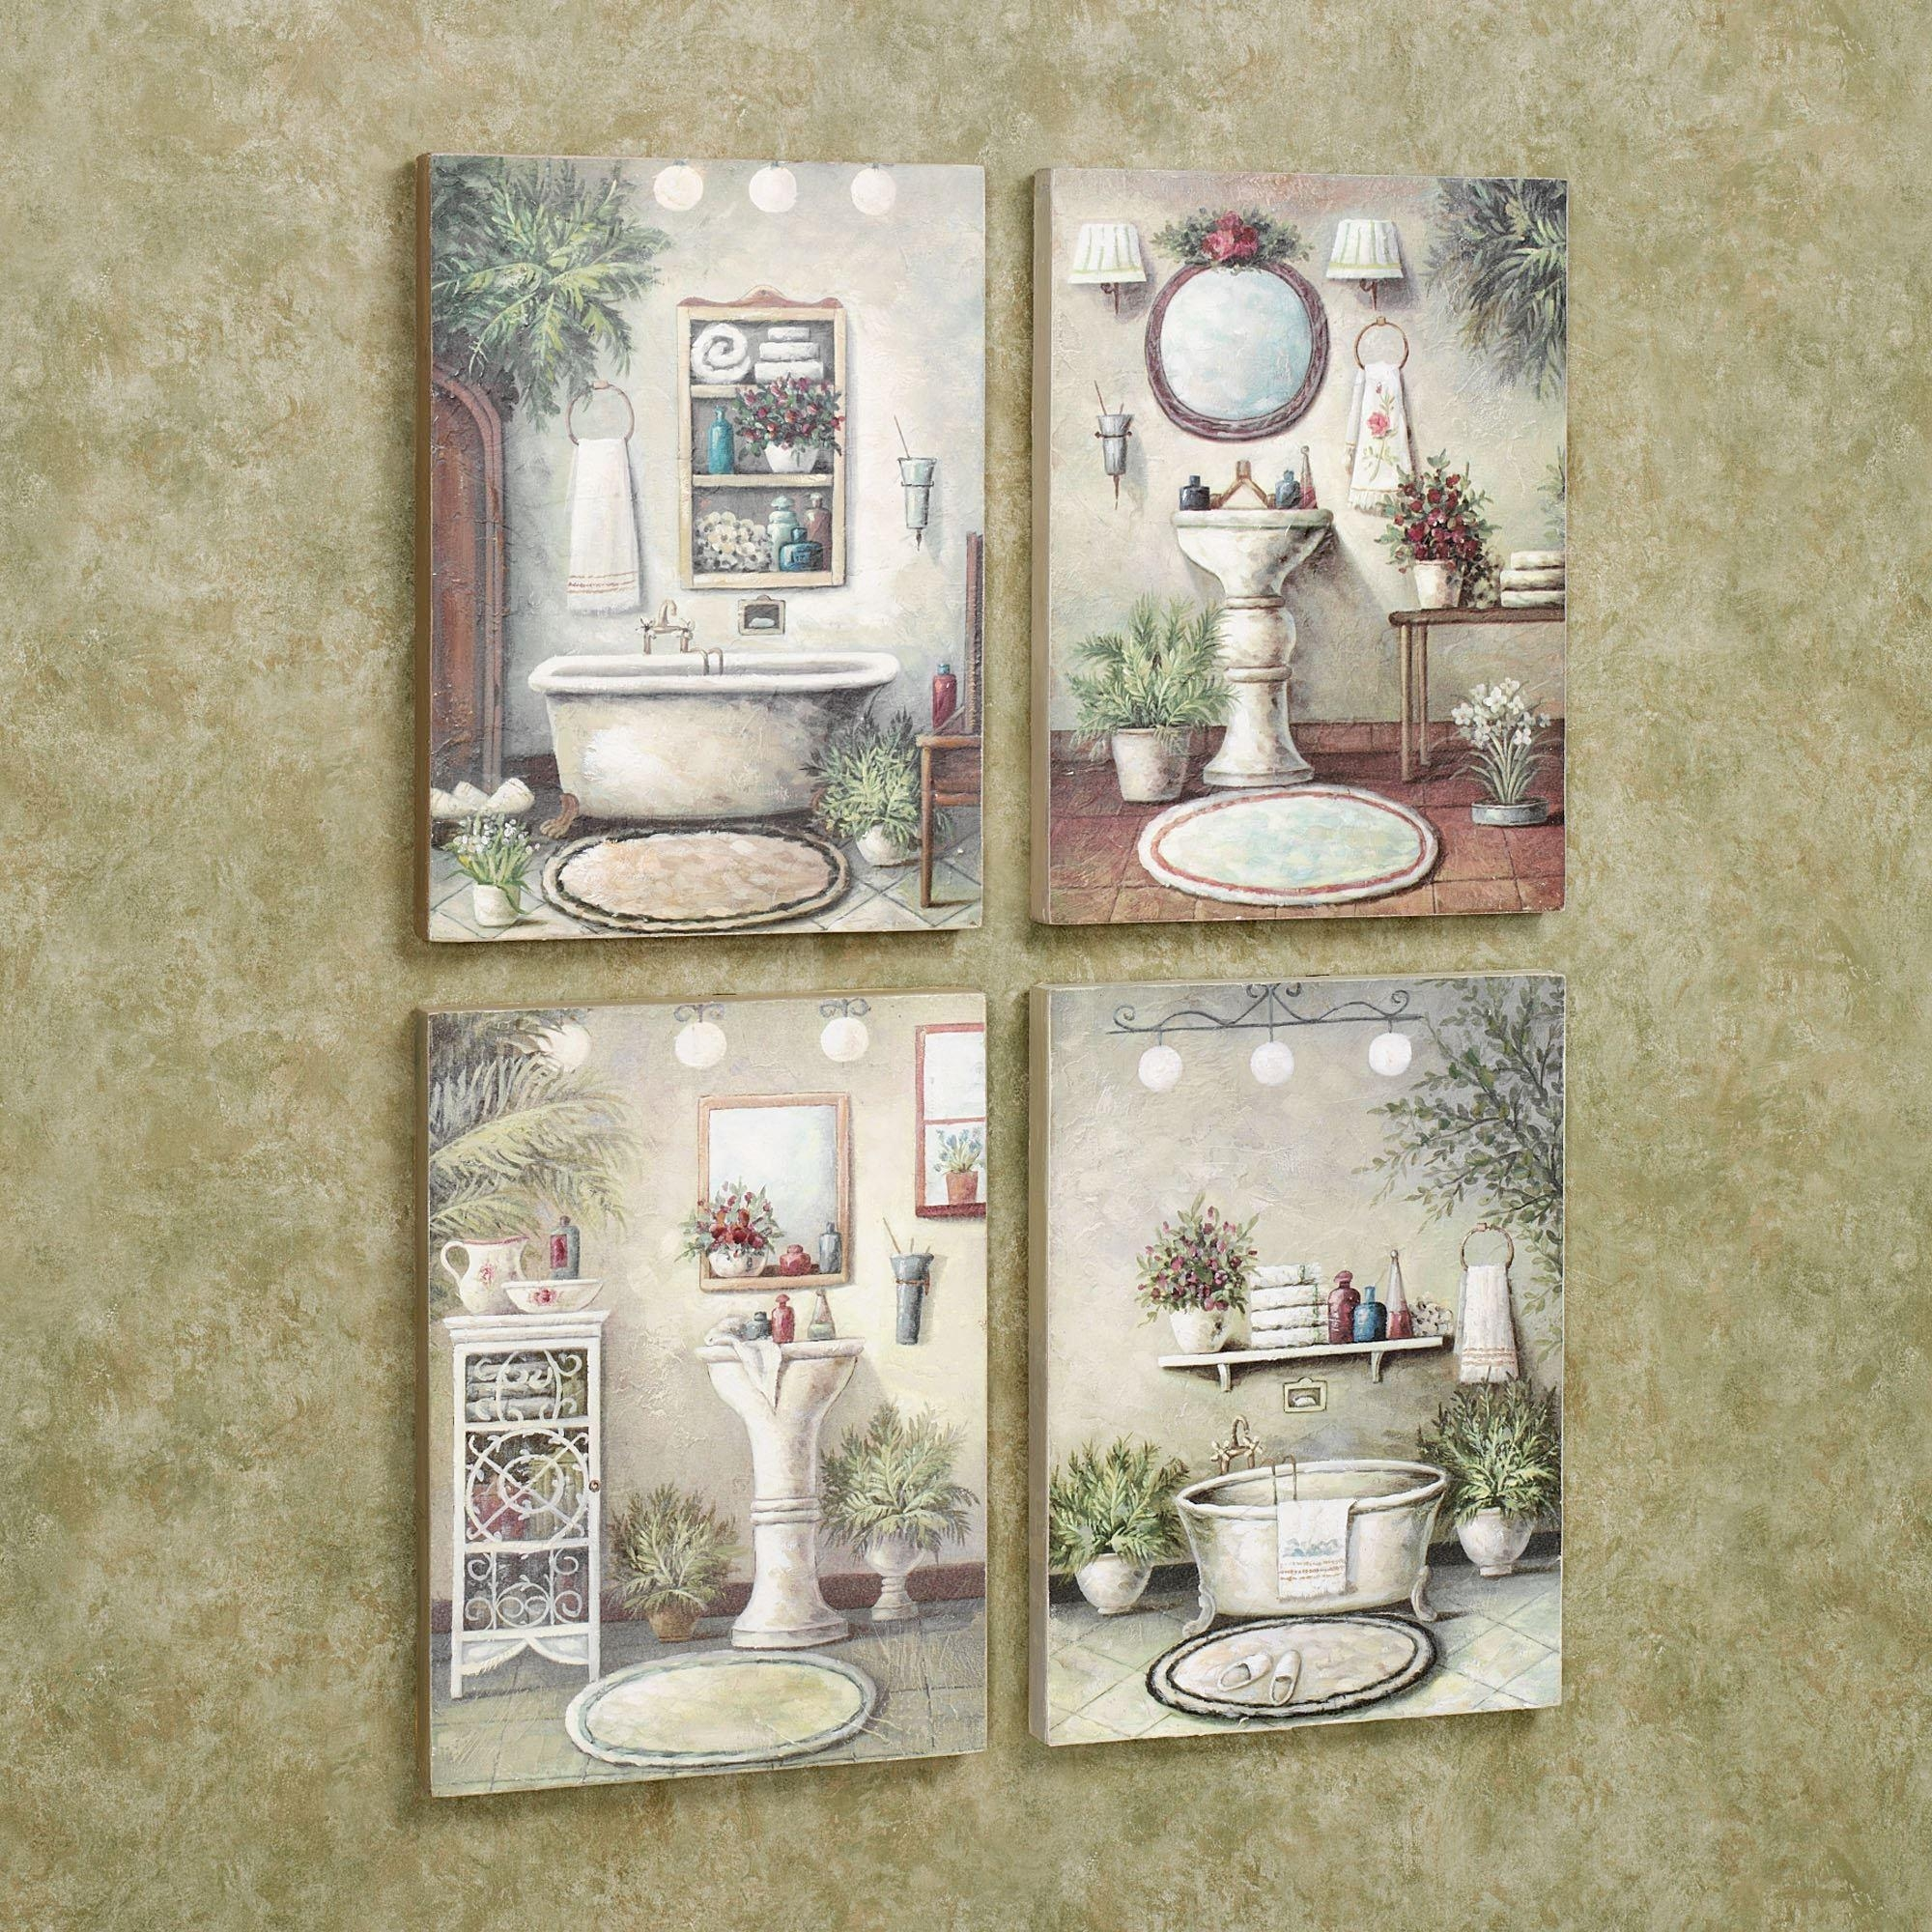 Wall Art For A Bathroom 2017 – Grasscloth Wallpaper Inside Wall Art For The Bathroom (View 10 of 20)